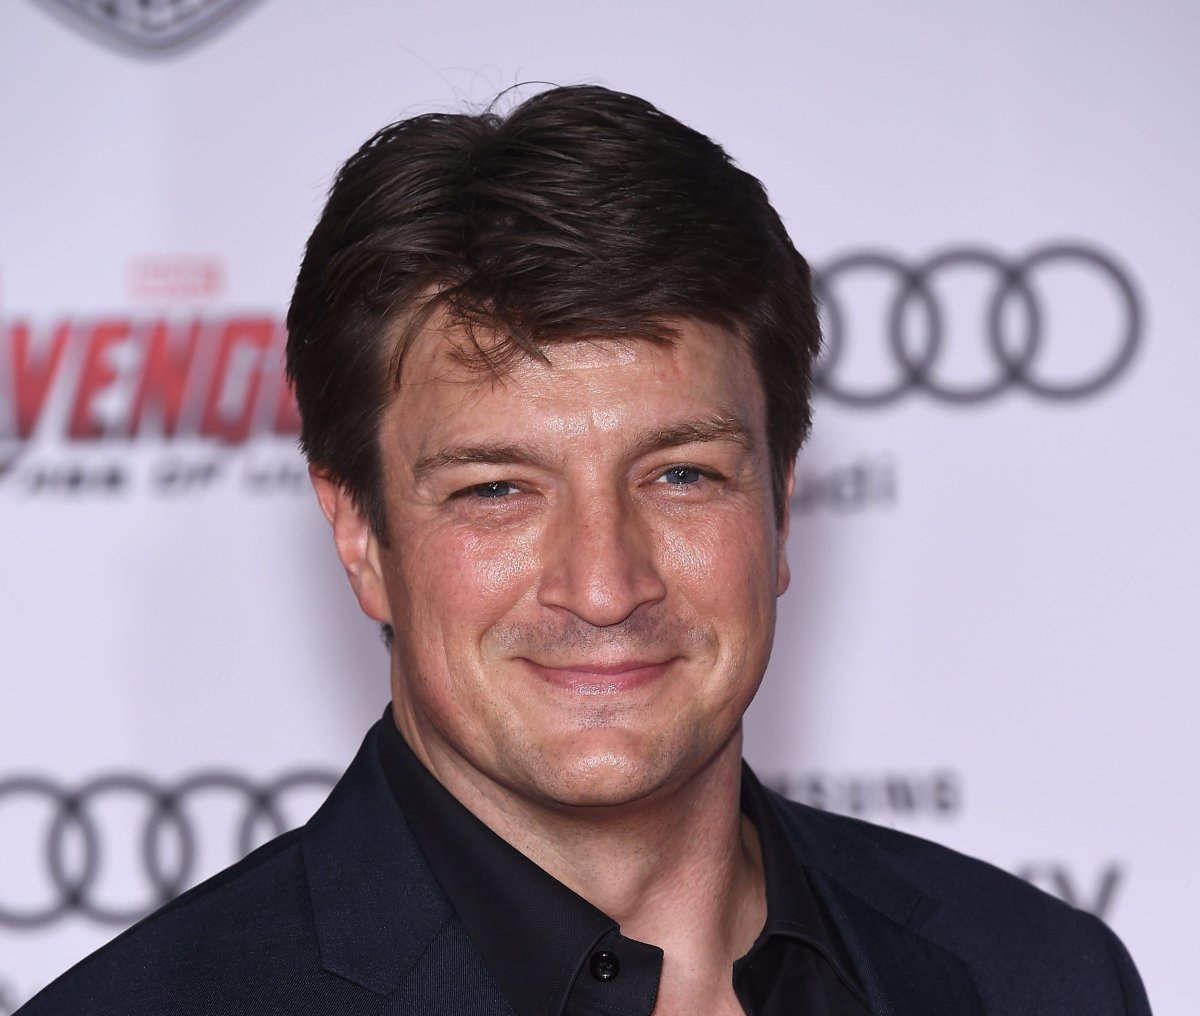 Nathan Fillion arriving for the premiere of Avengers: Age of Ultron at the Dolby Theatre in Hollywood, Los Angeles on April 13, 2015.